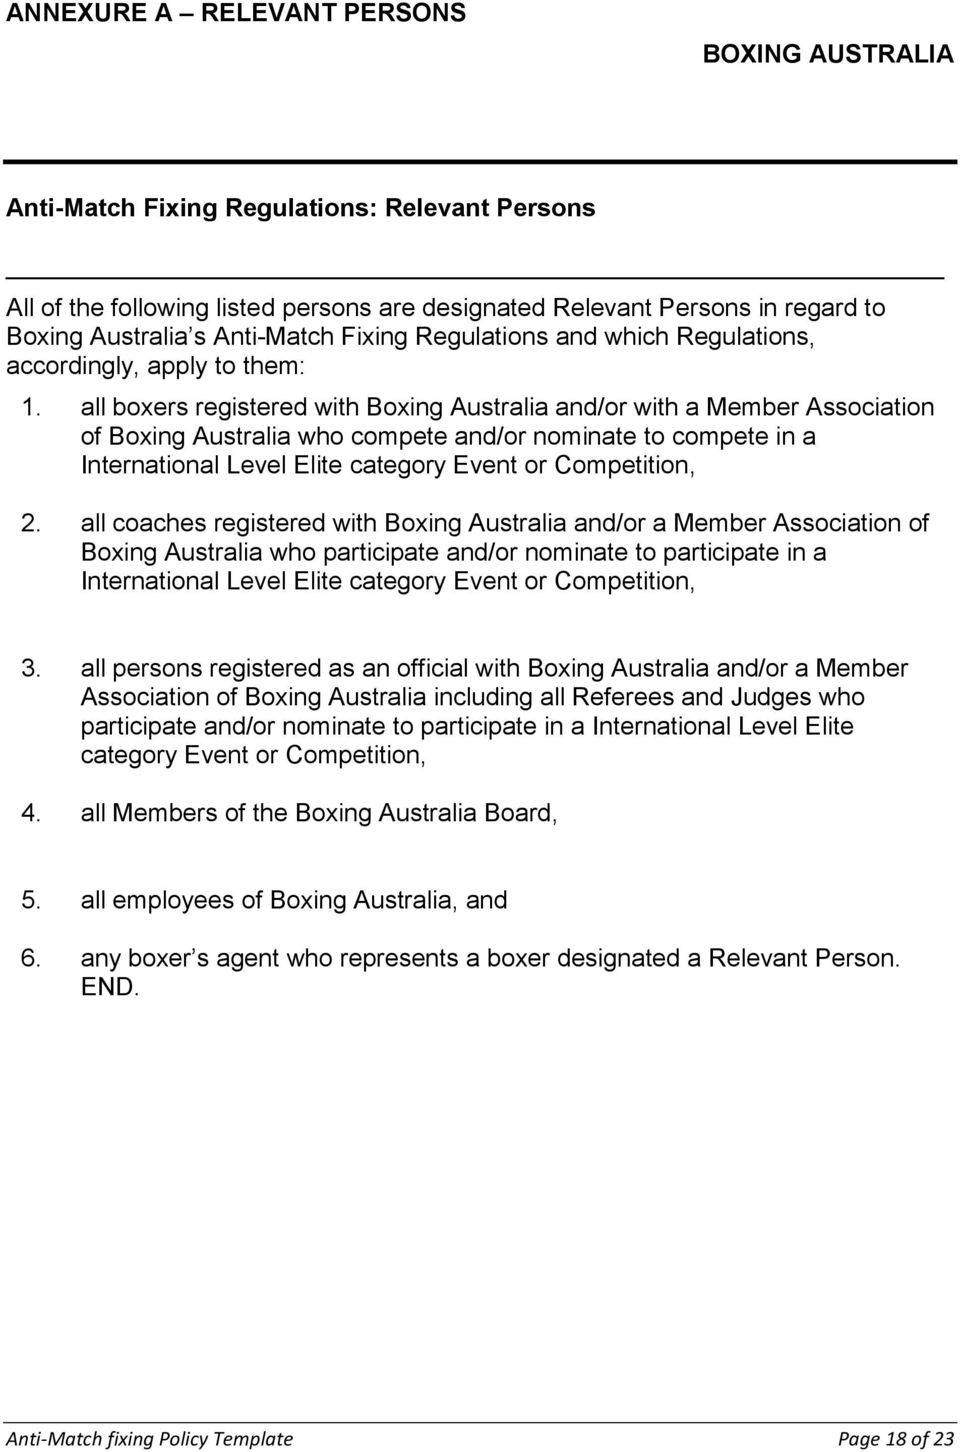 all boxers registered with Boxing Australia and/or with a Member Association of Boxing Australia who compete and/or nominate to compete in a International Level Elite category Event or Competition, 2.